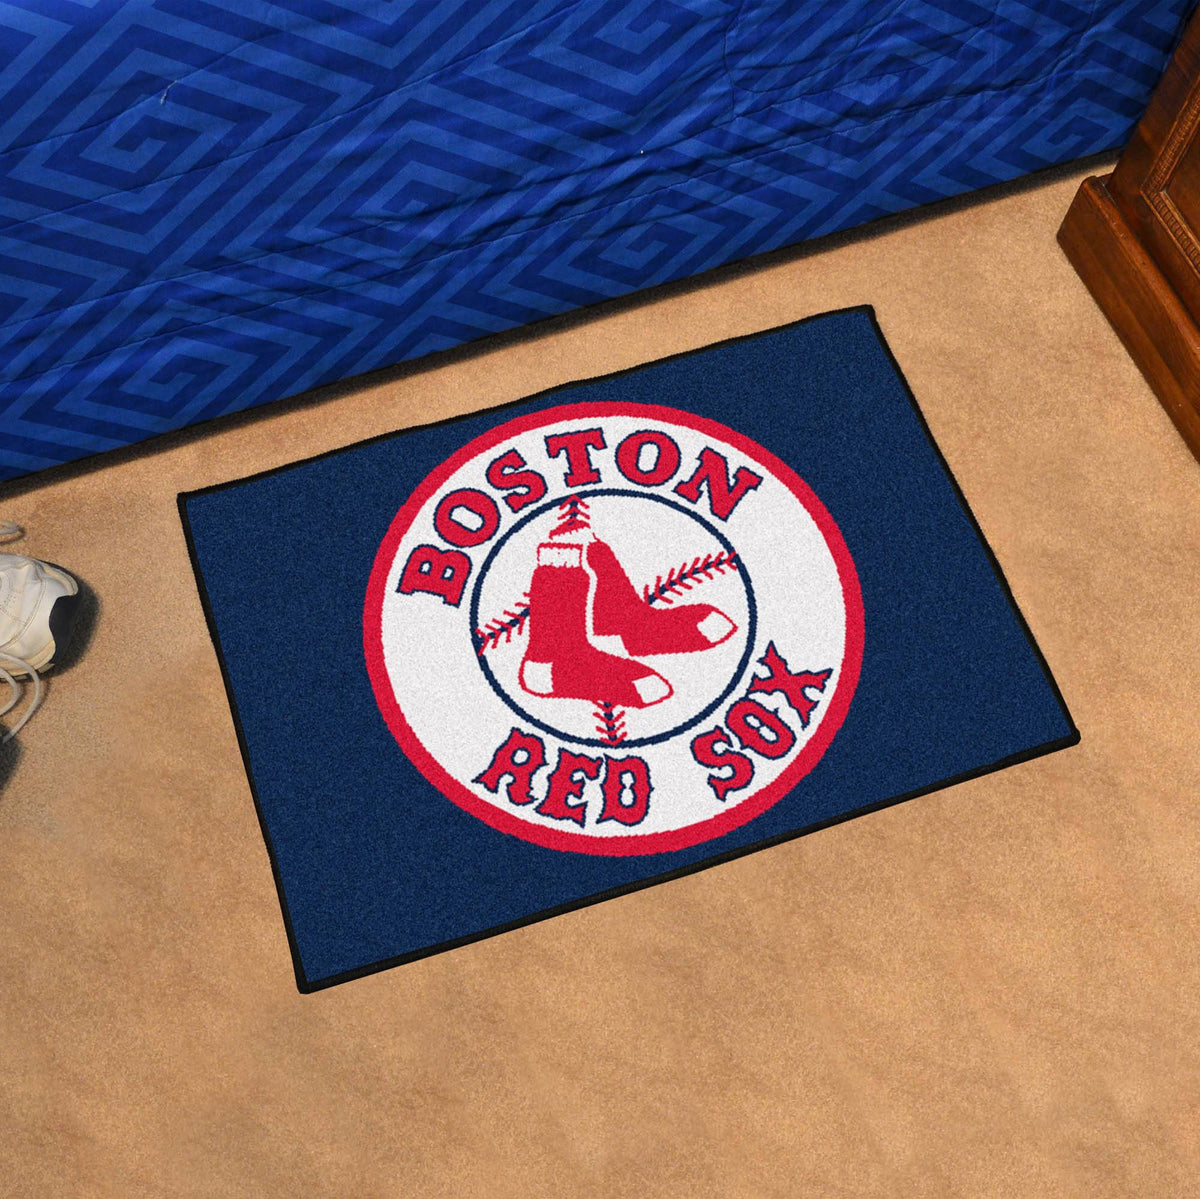 MLB - Starter Mat MLB Mats, Rectangular Mats, Starter Mat, MLB, Home Fan Mats Boston Red Sox